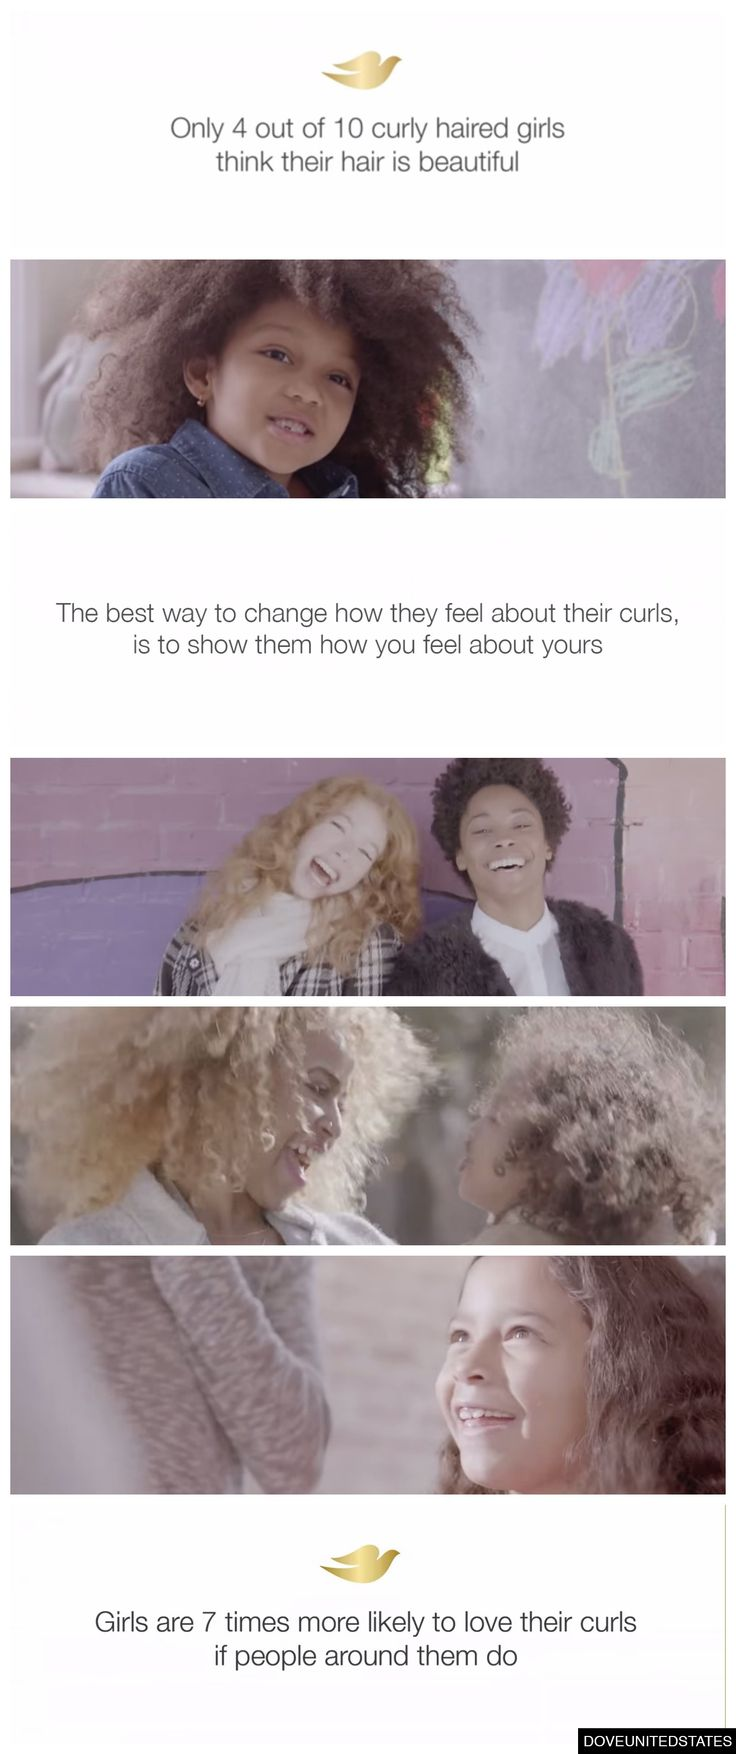 The new Dove campaign teaches girls to love their curls. An awesome reminder to celebrate yourself just as you are!